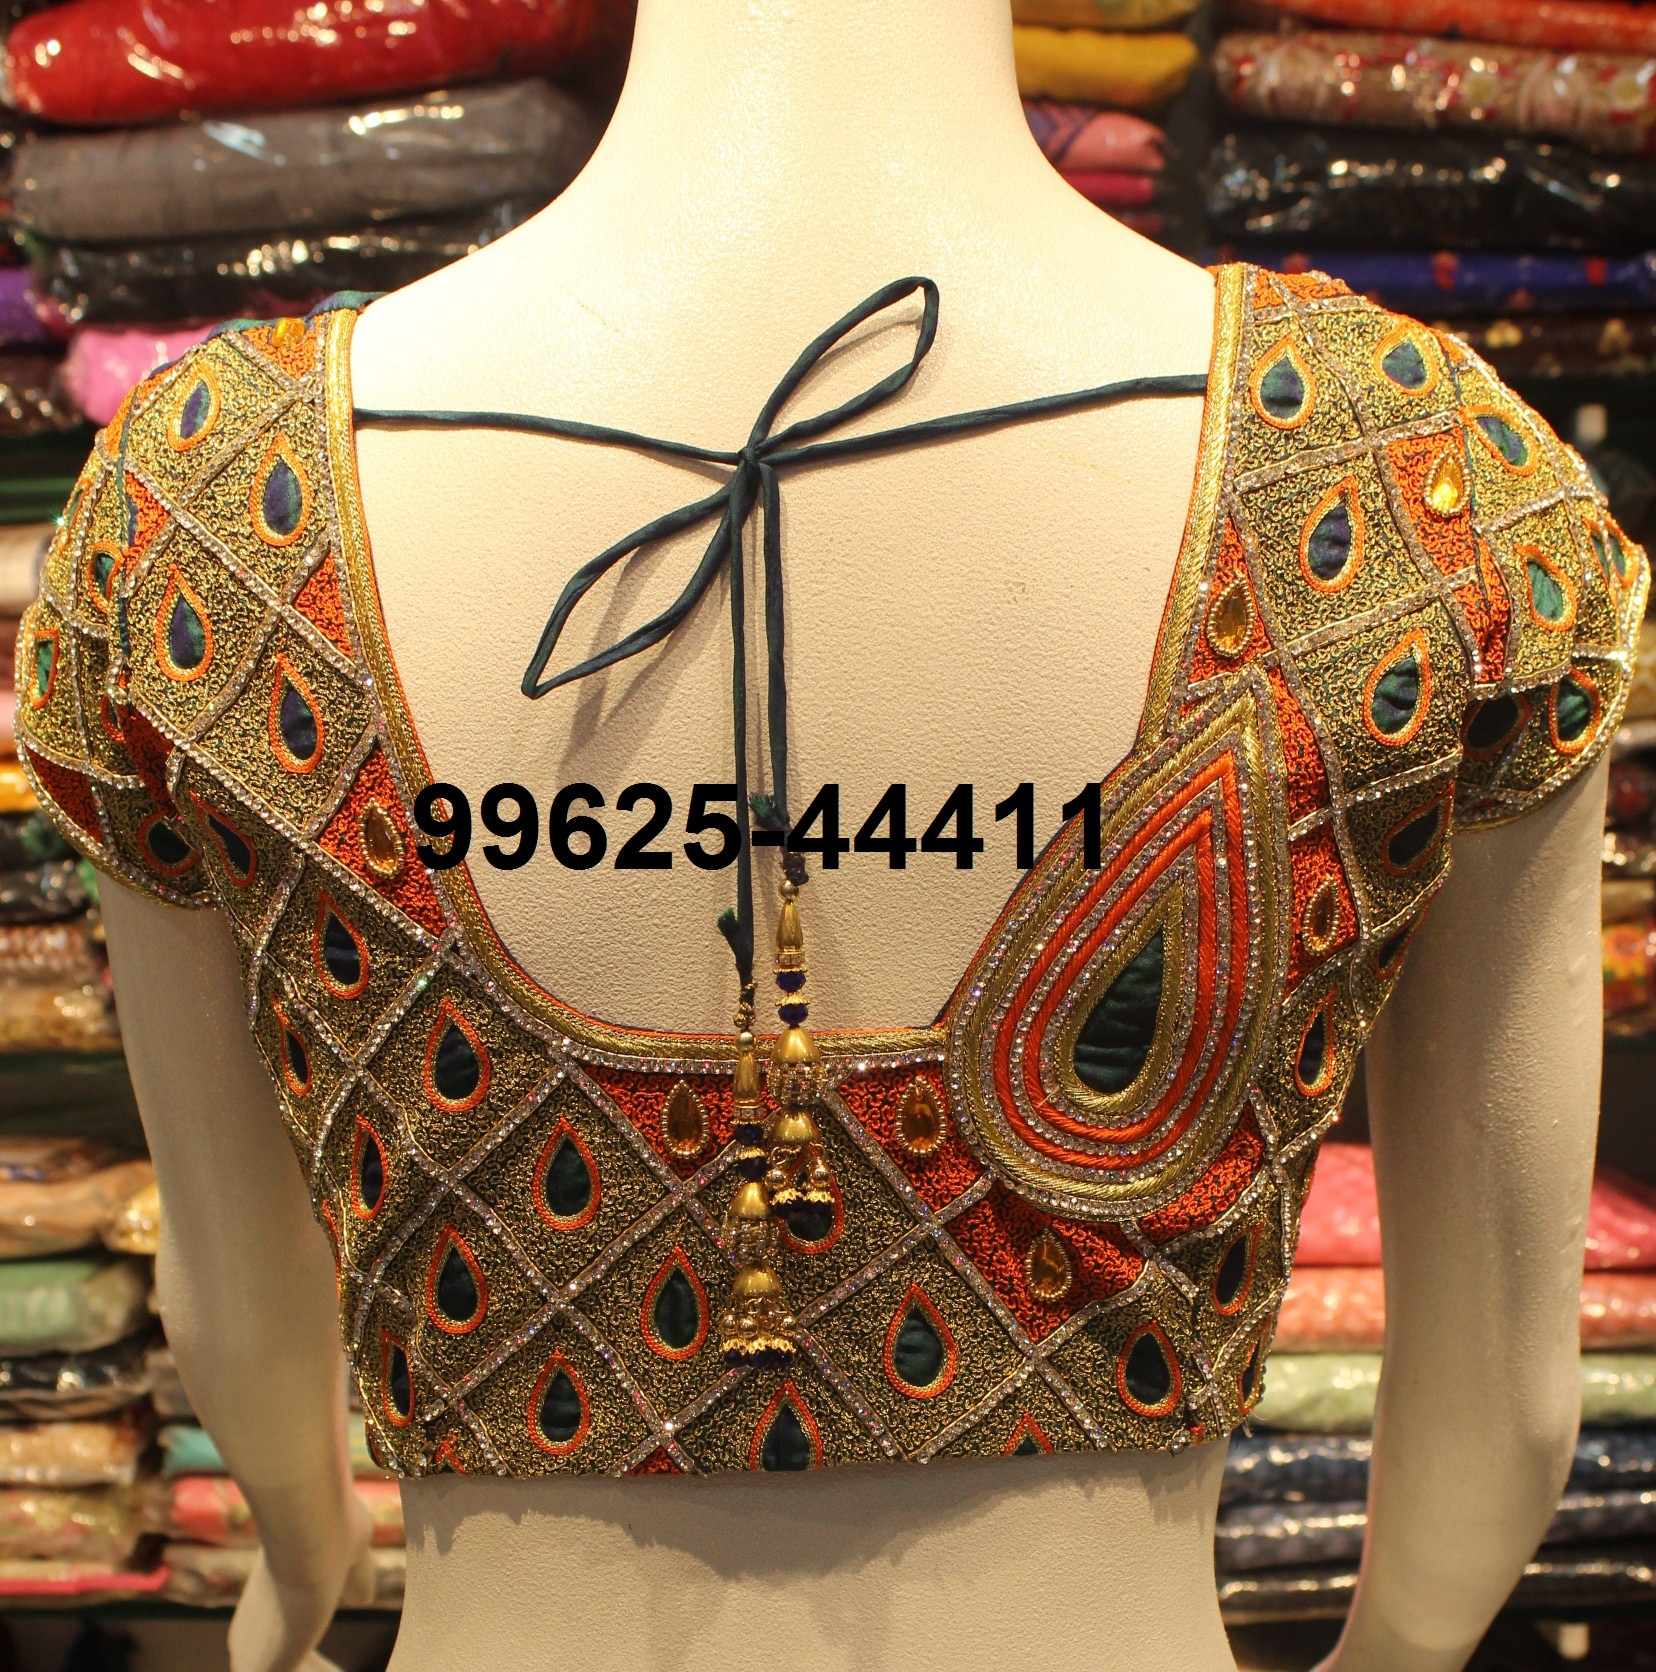 Bridal Blouse At Fabloon Fashion Boutique And Designer Wedding Blouse Tailoring.  Bridal Designer Boutique. Blouse Stitching. Wedding Designer Blouses. Fancy Blouse Tailors.  Check All For More Collections.